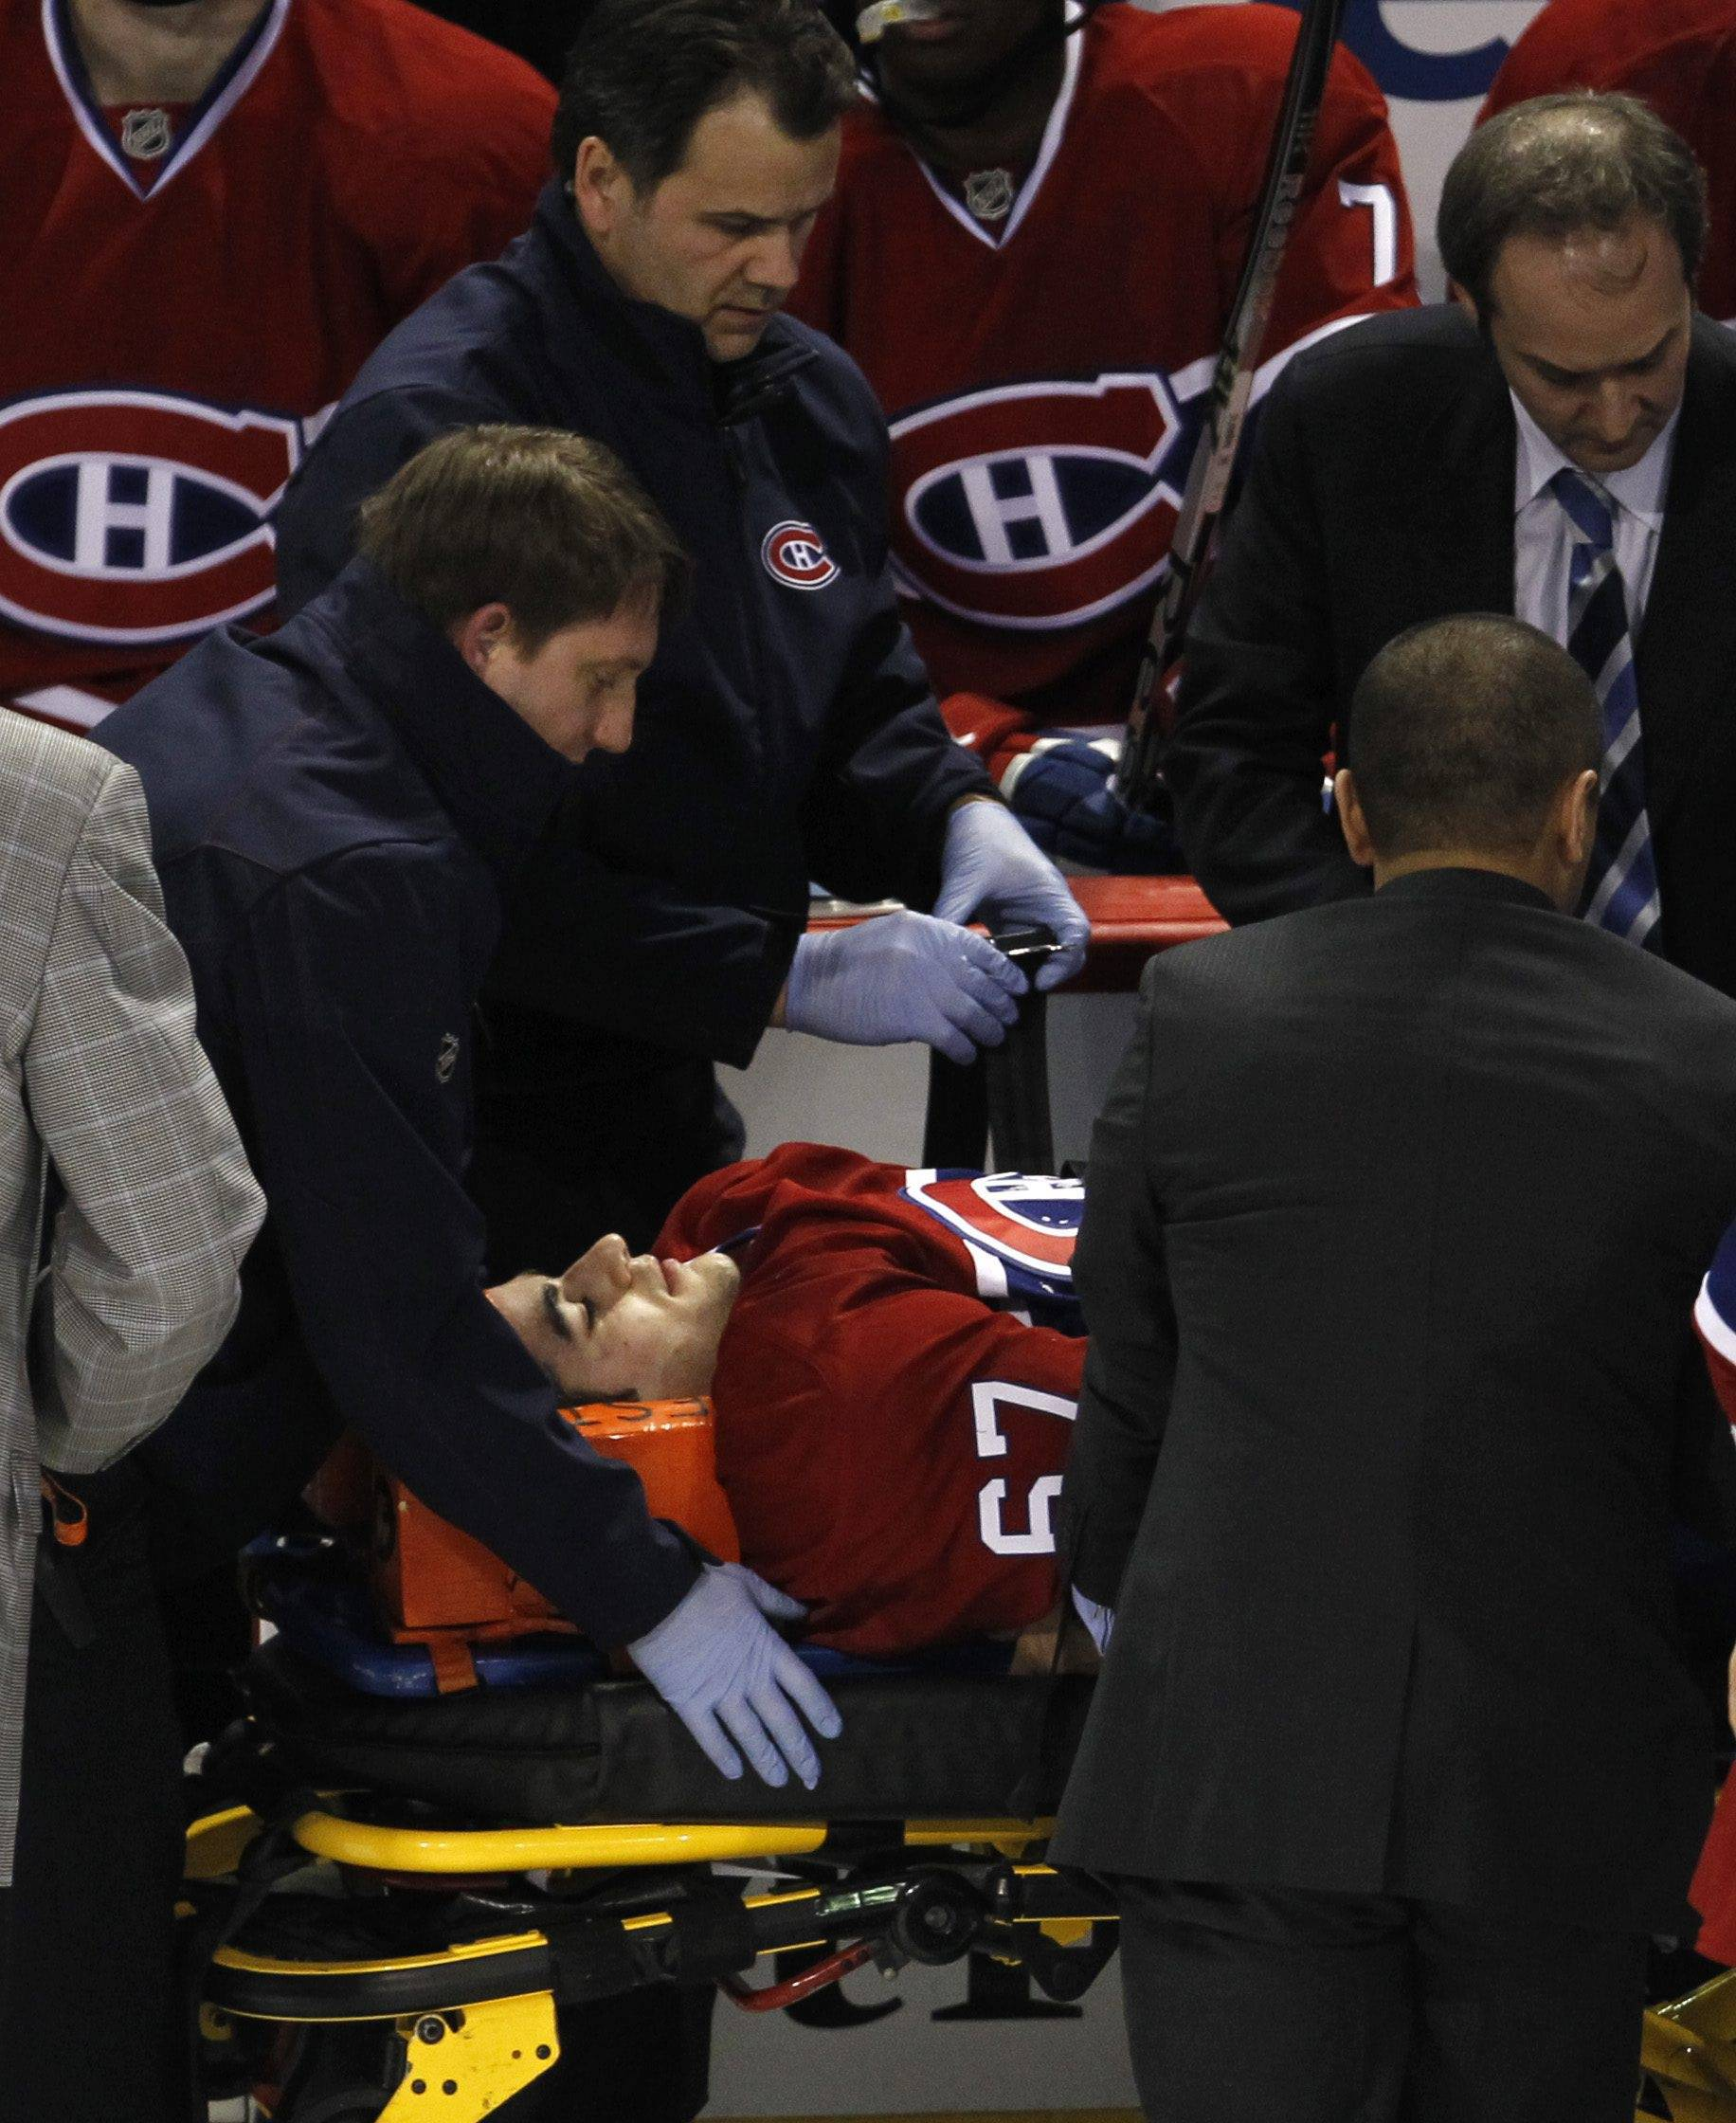 Montreal Canadiens' Max Pacioretty is wheeled away on a stretcher after taking a hit by Boston Bruins' Zdeno Chara.